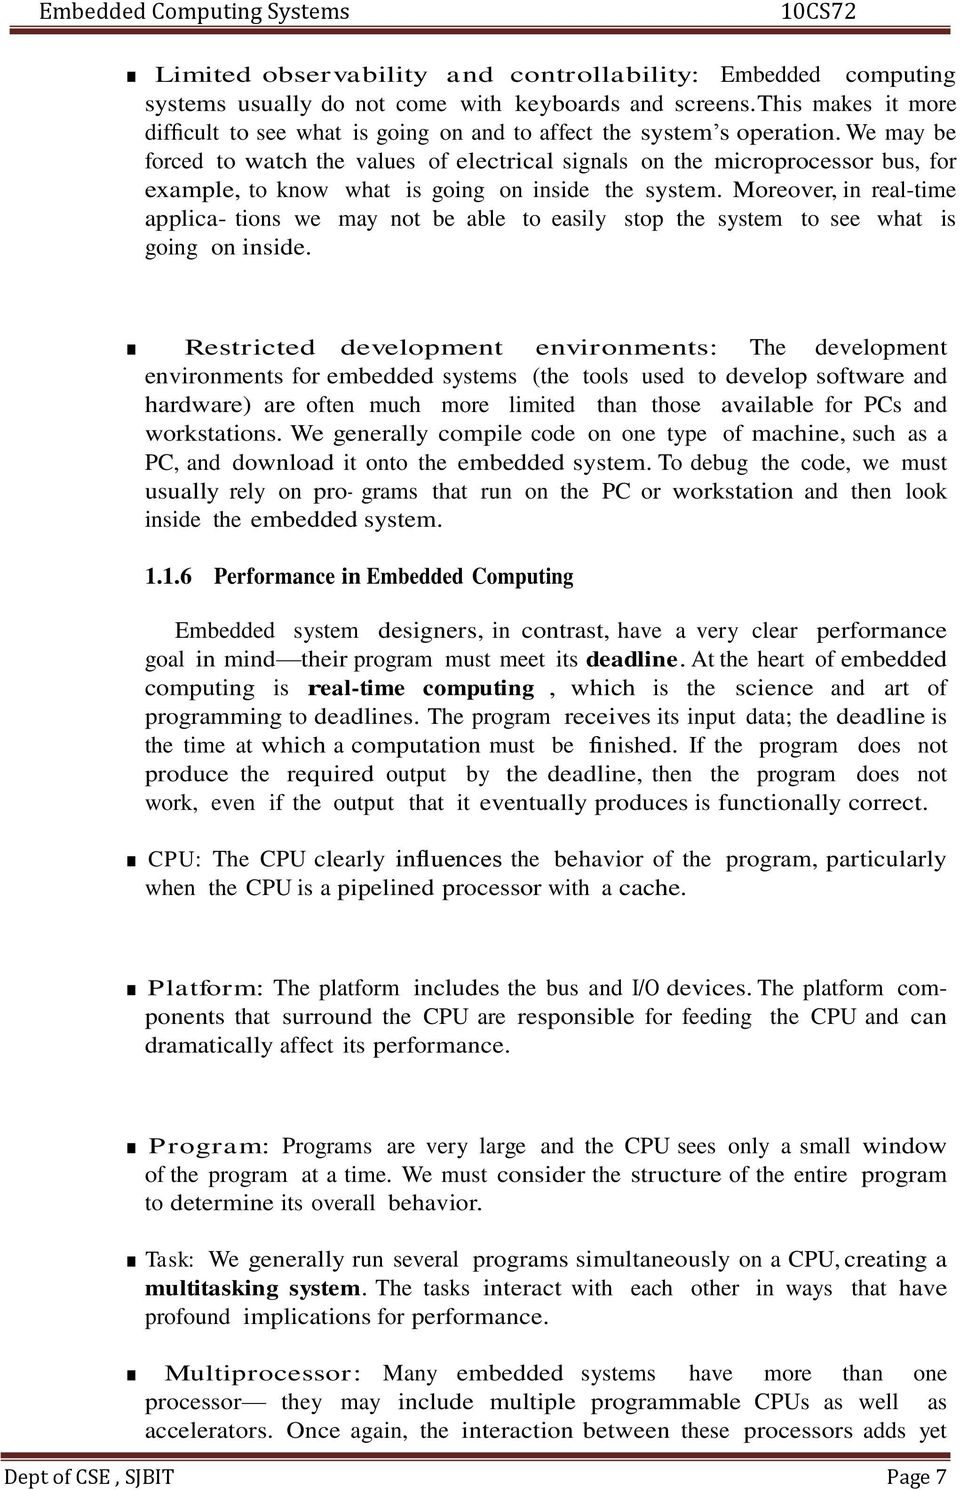 Embedded Computing Systems 10cs72 Pdf Free Download